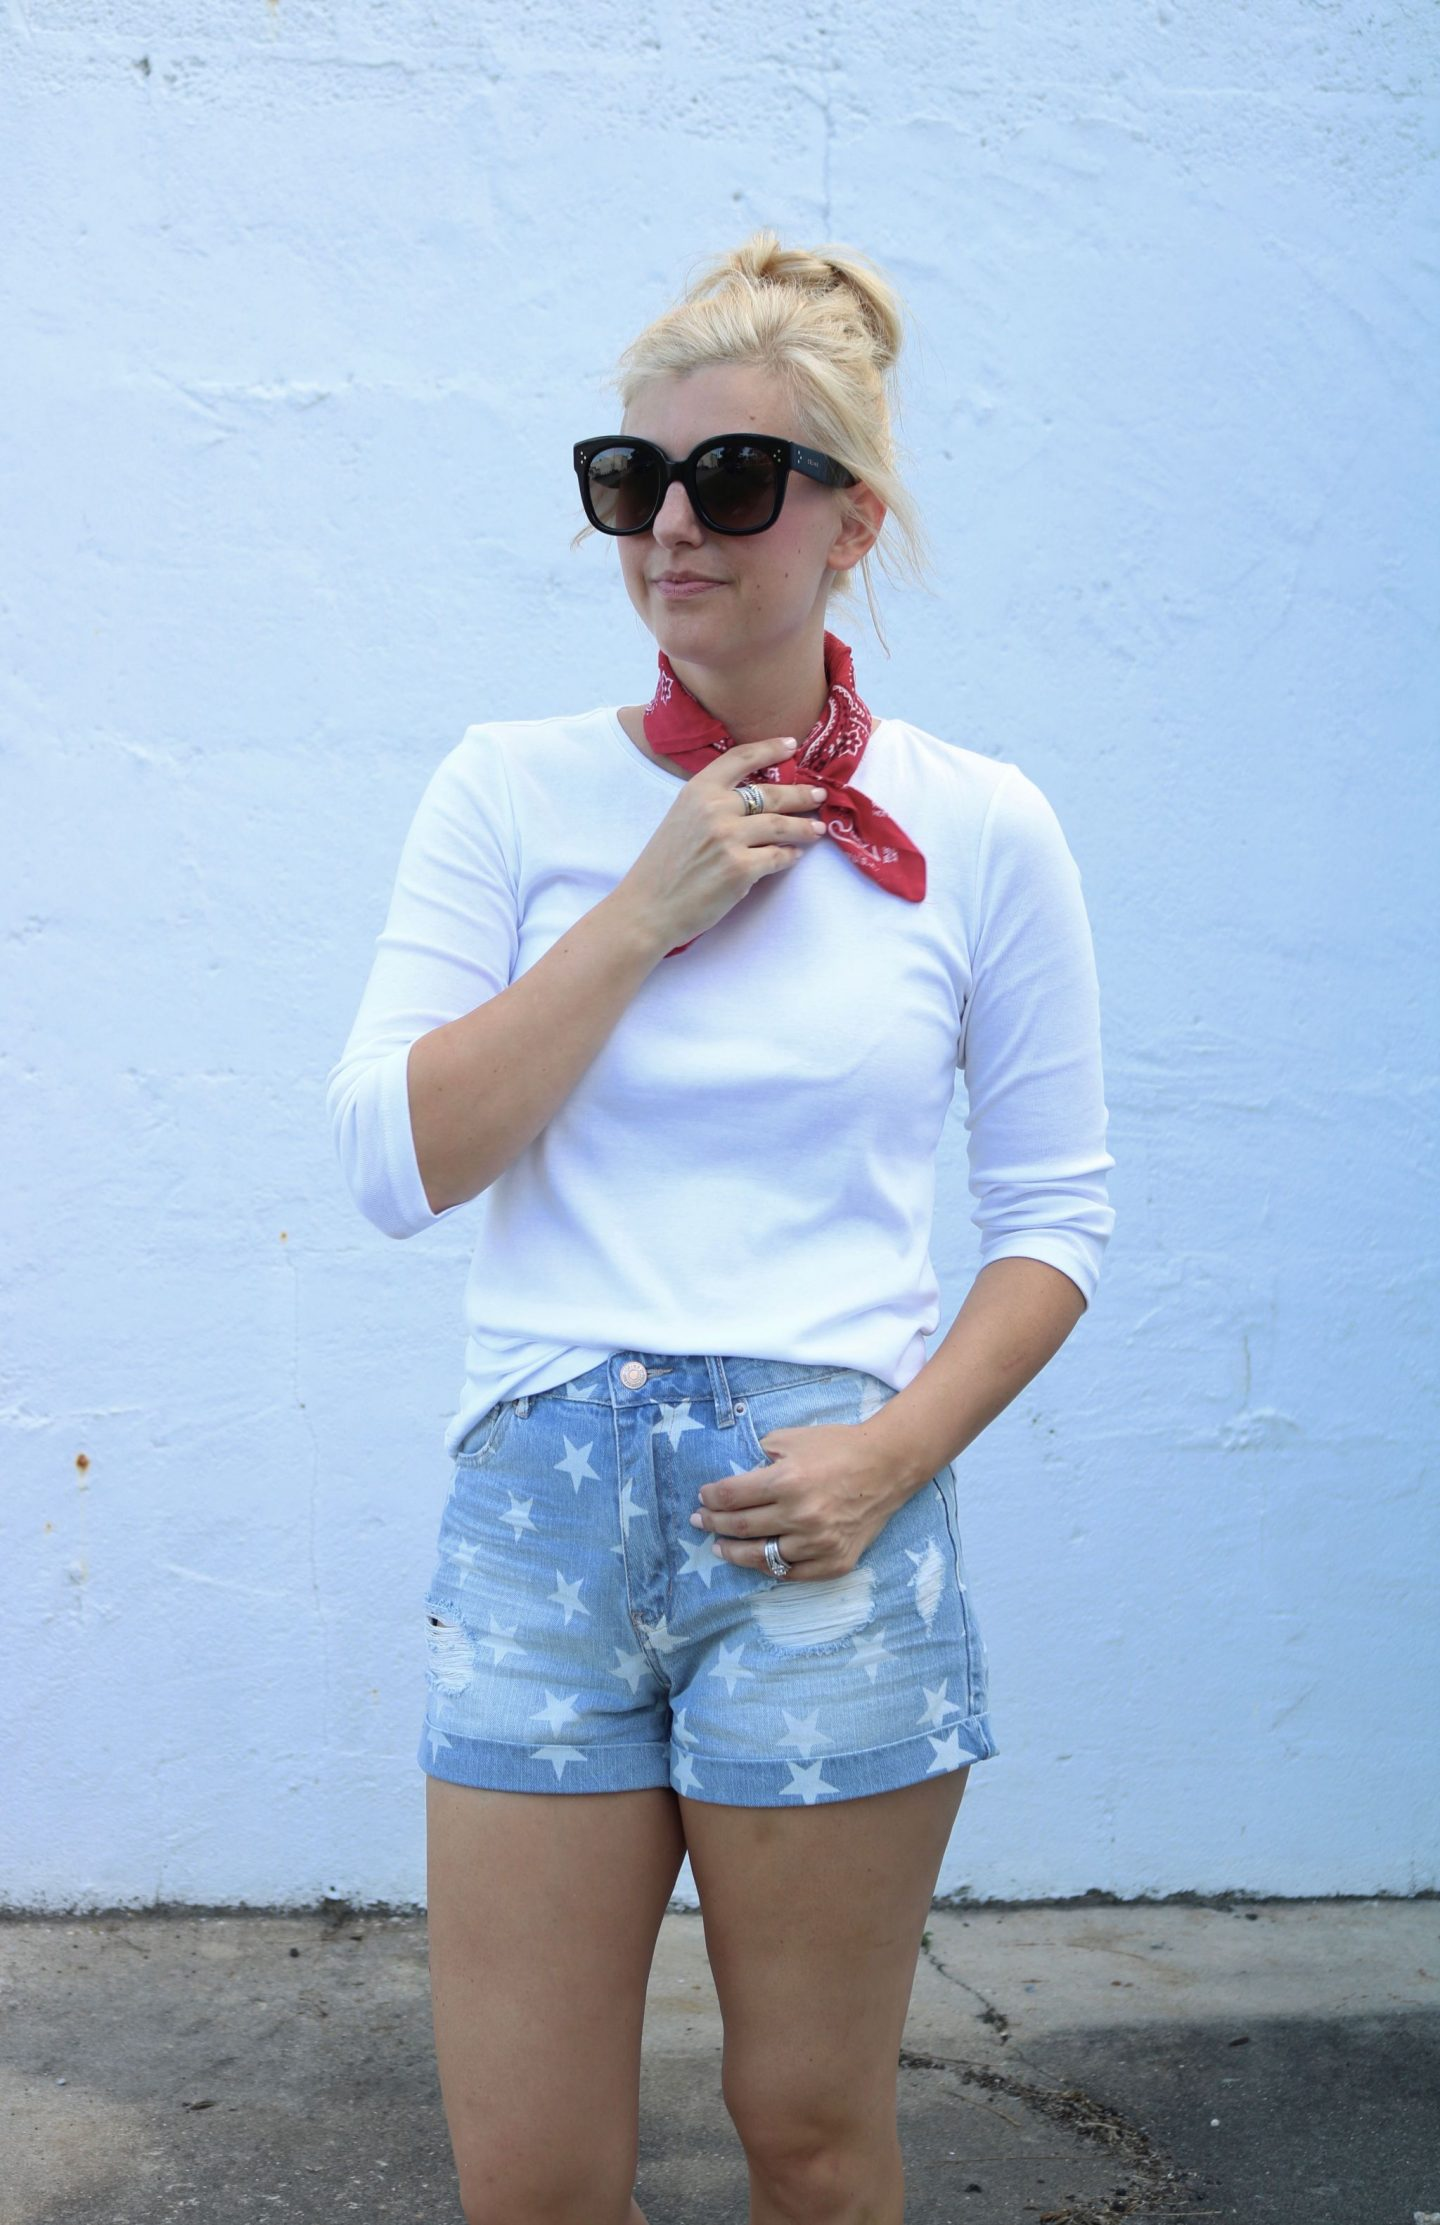 ily couture, star denim shorts, celine audrey sunglasses, gold kate spade slides, ily couture toddler, america